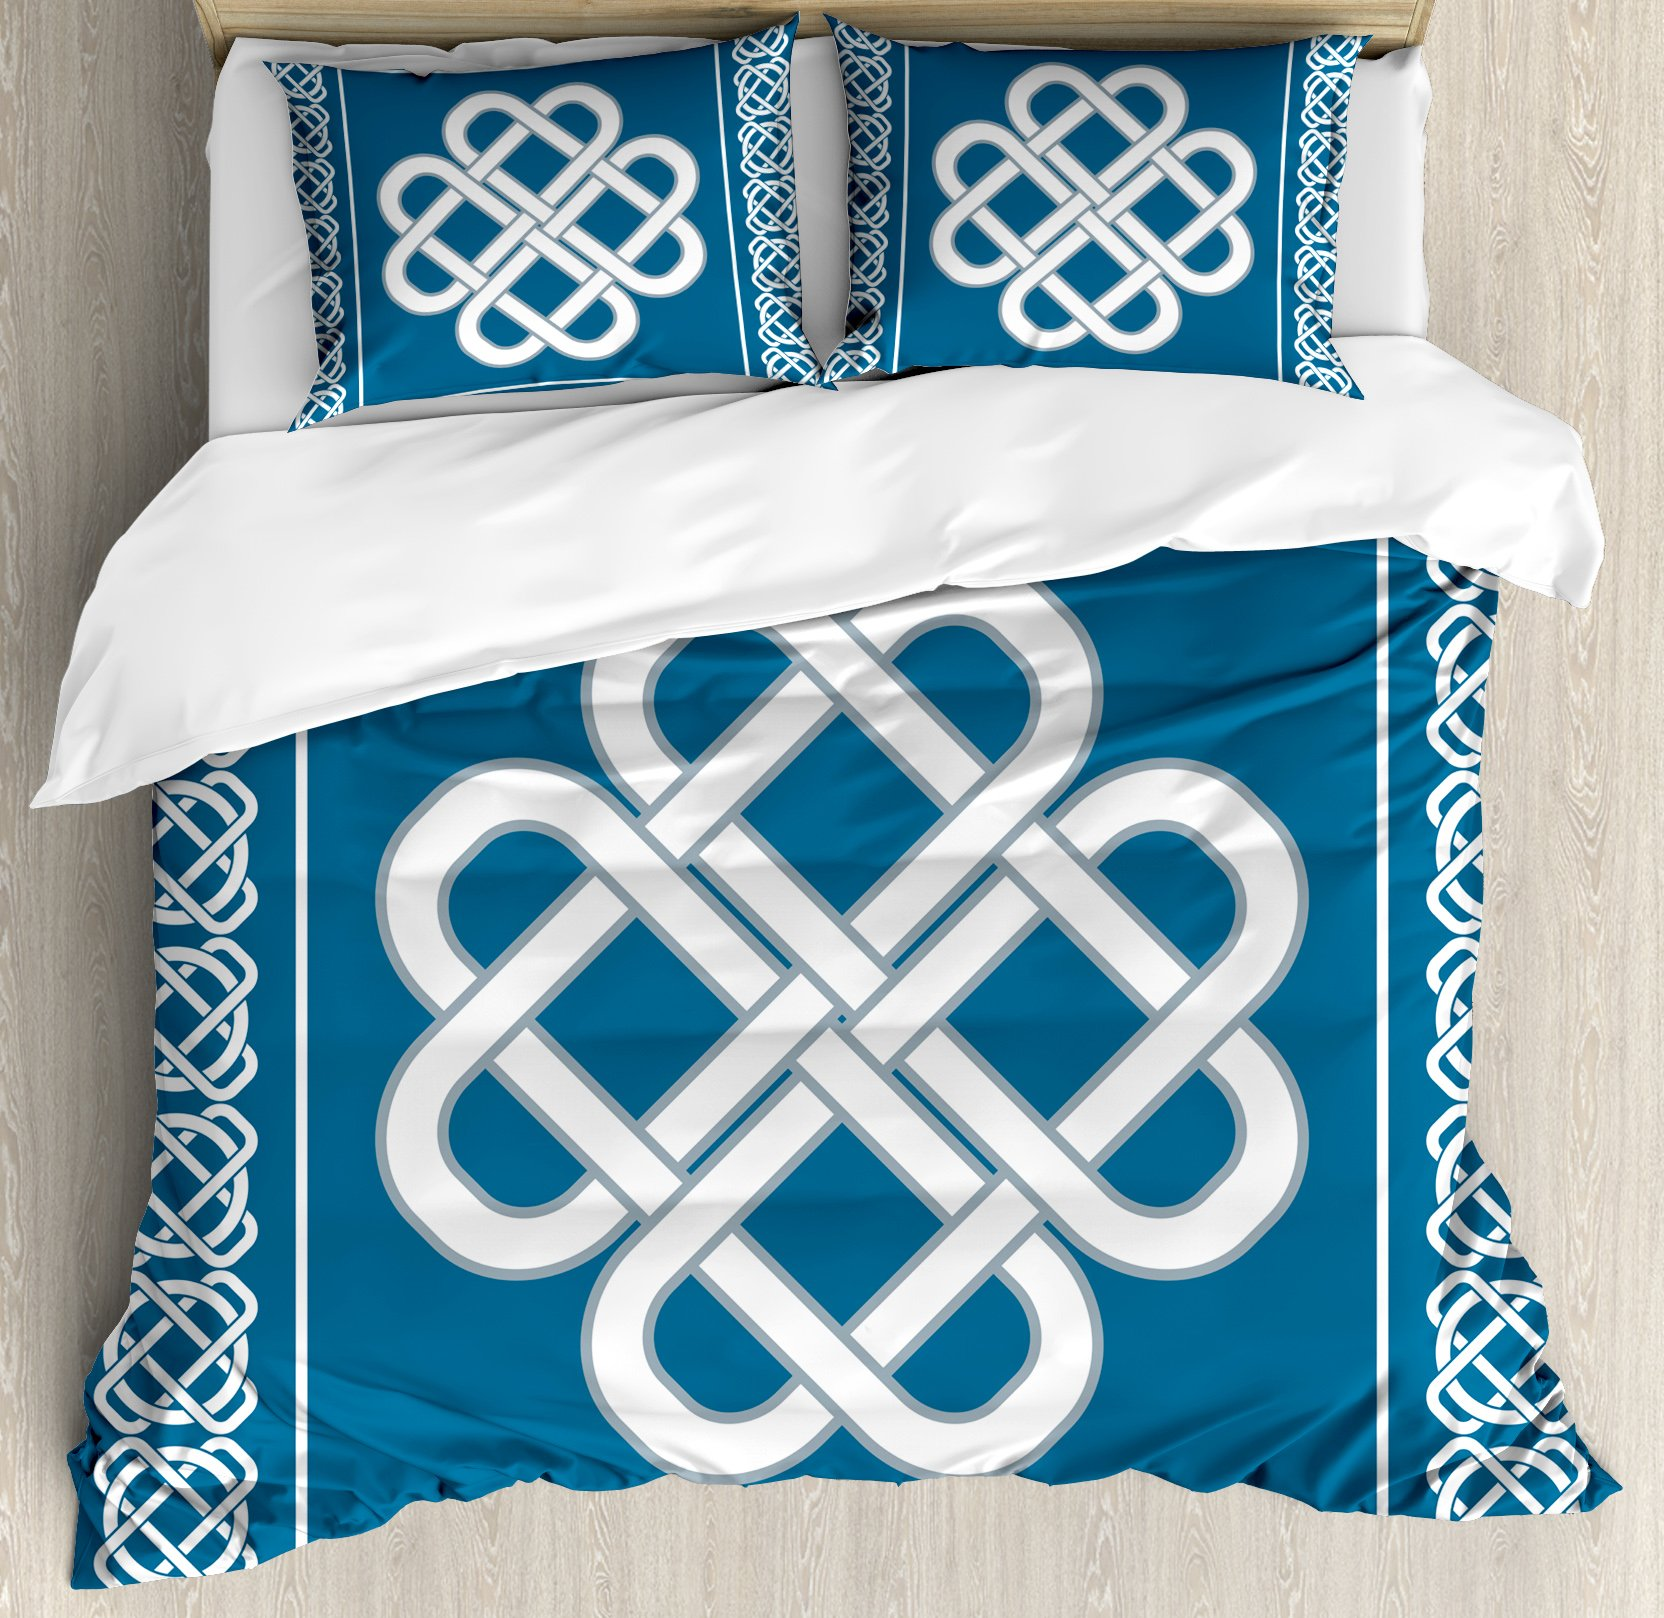 Irish Duvet Cover Set King Size by Ambesonne, Celtic Love Knot Symbol of Good Fortune Framework Border Historical Amulet Design, Decorative 3 Piece Bedding Set with 2 Pillow Shams, Blue and White